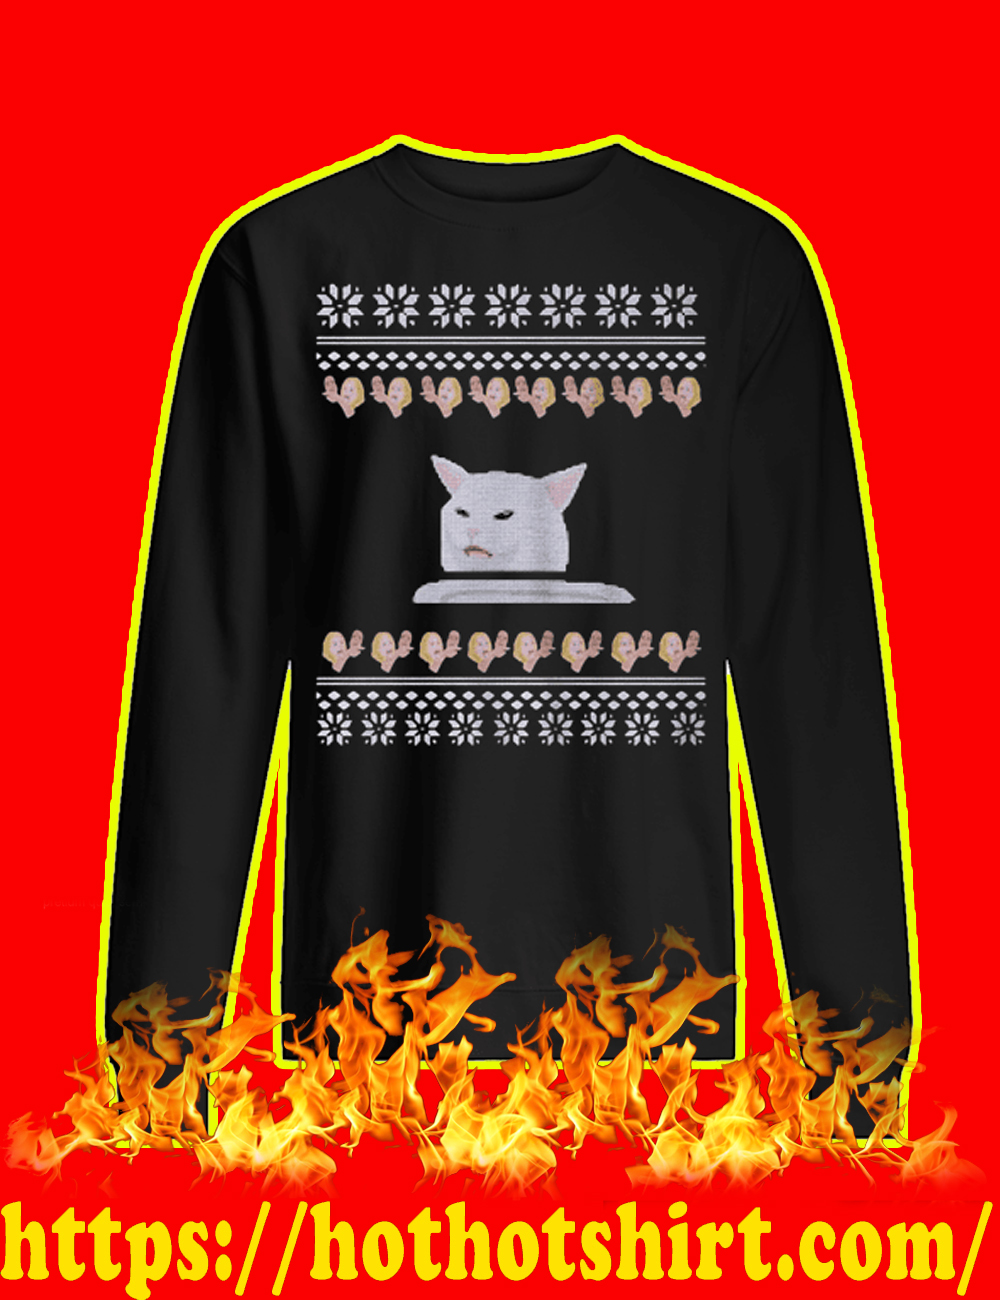 Woman yelling at a cat meme christmas sweater - style 2